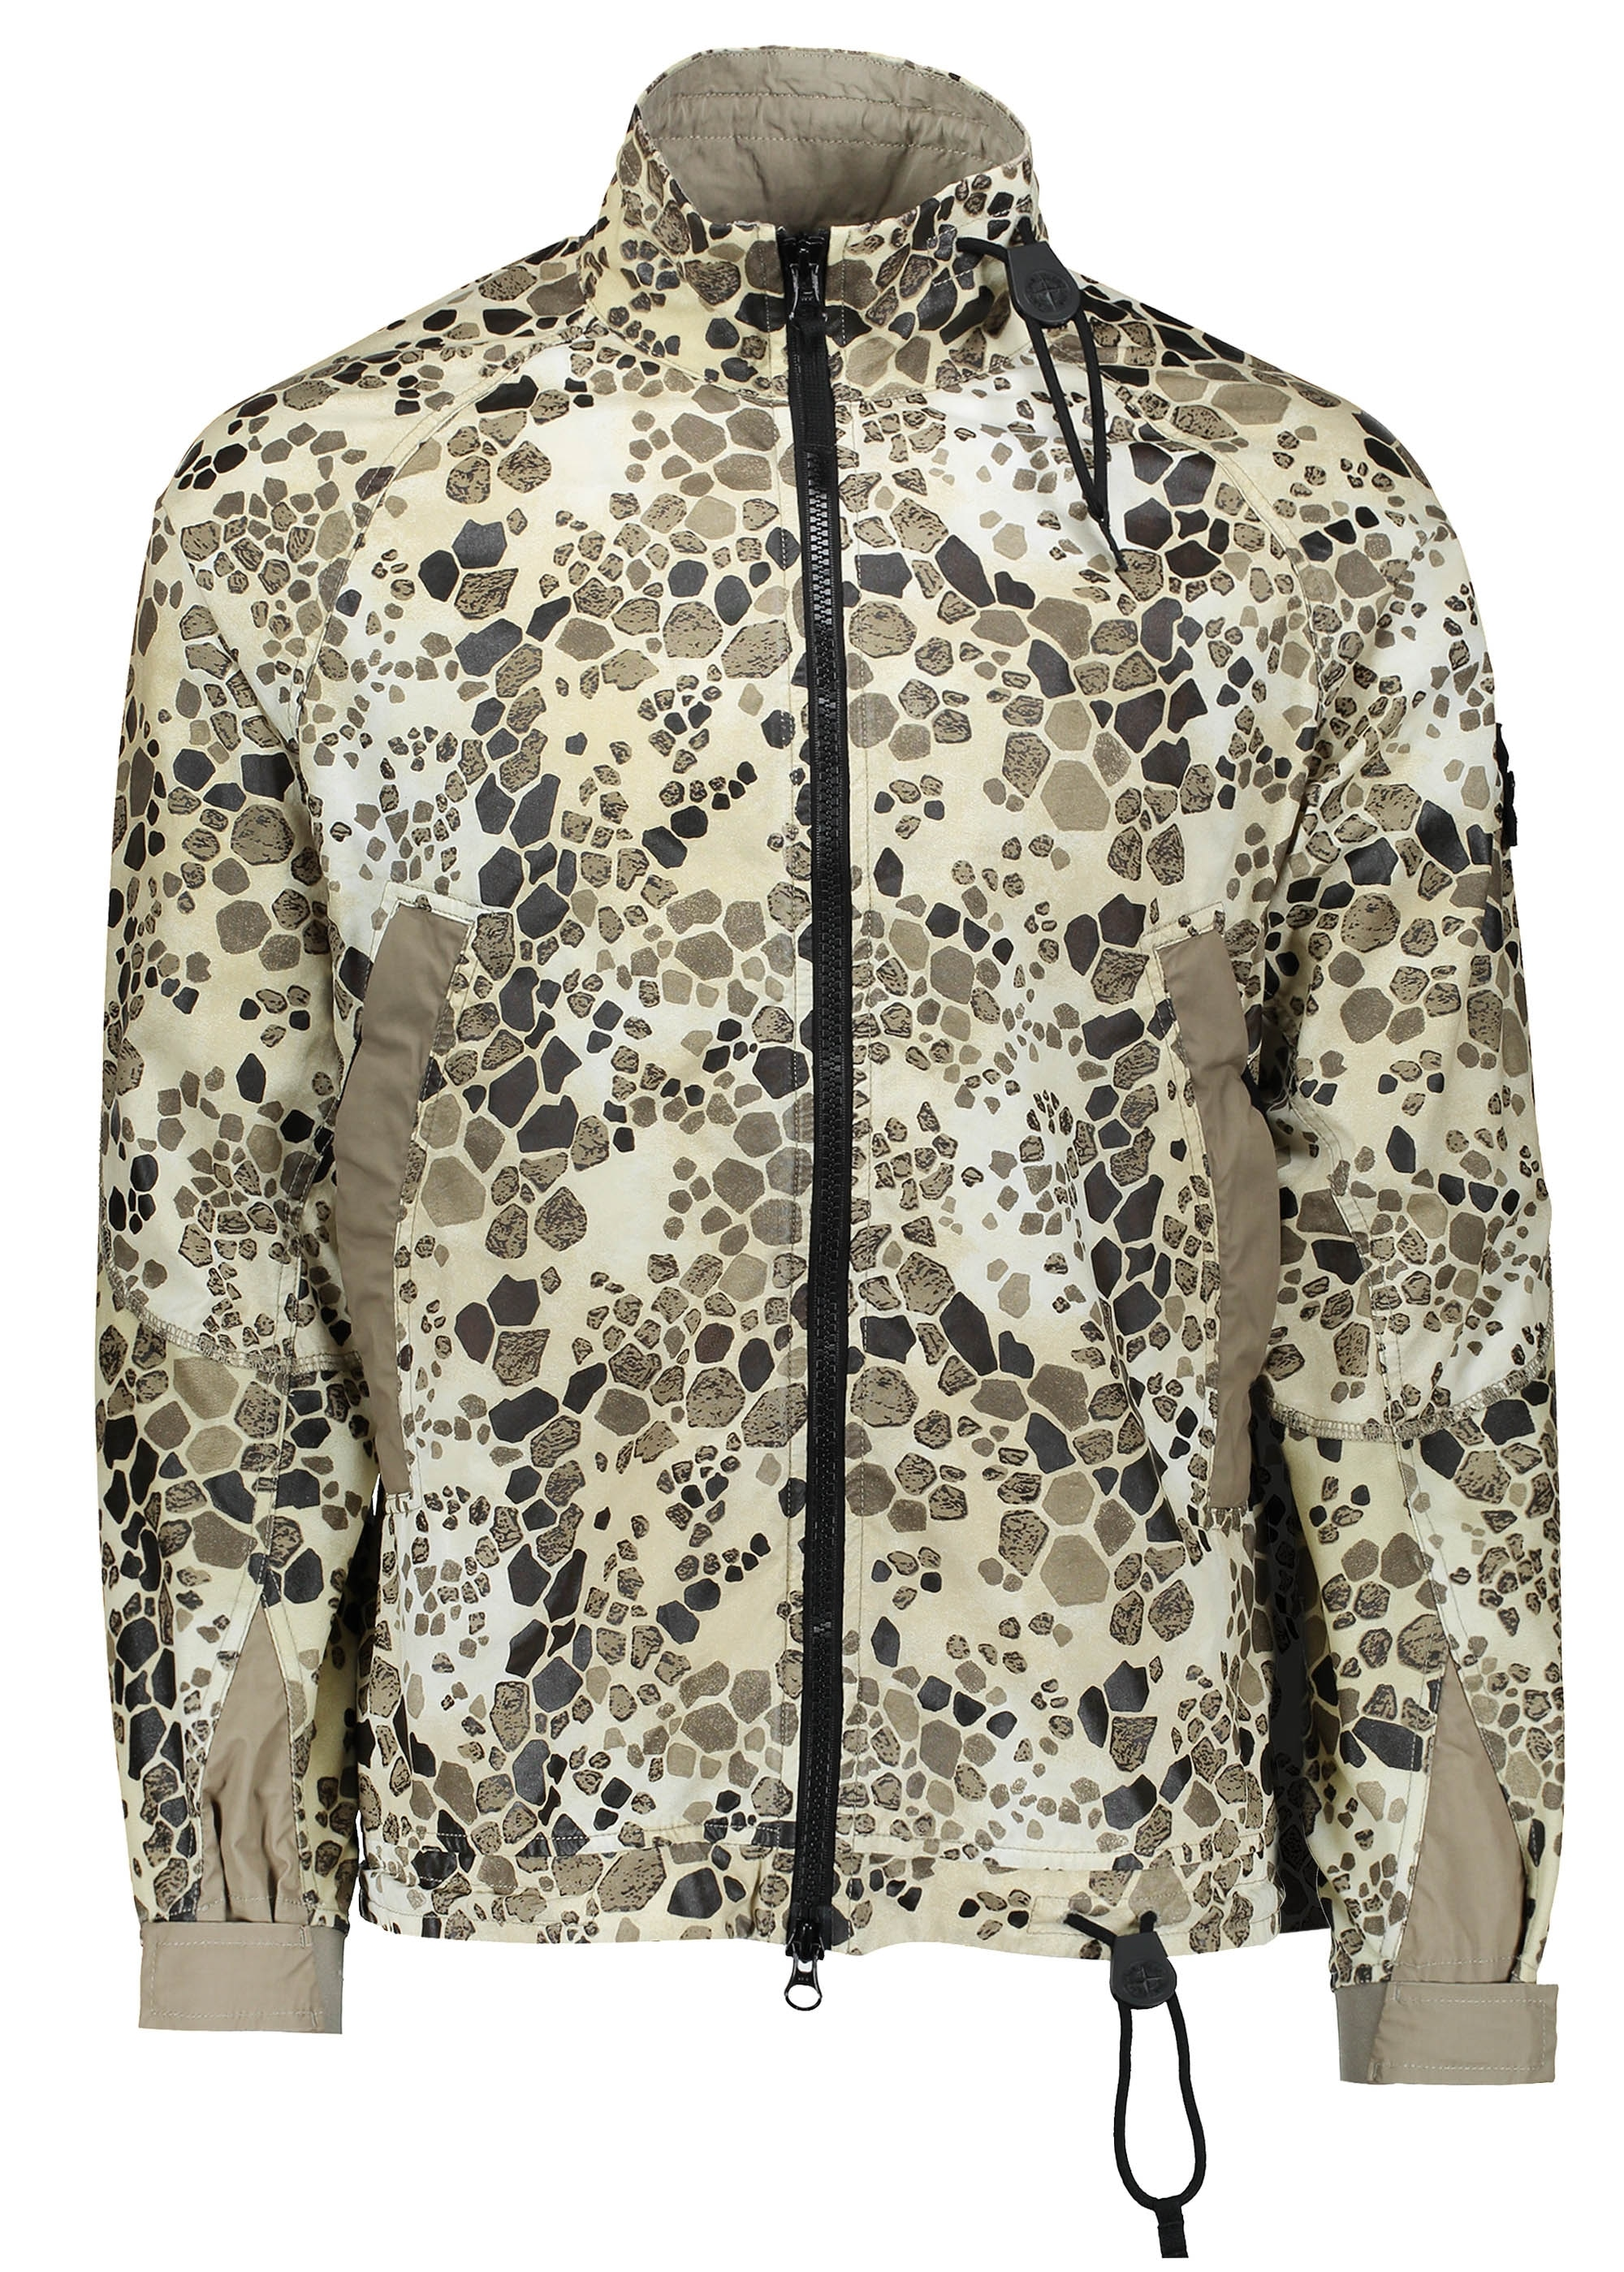 3e6bbed7 Stone Island Alligator Camo Zip Jacket - Beige - Triads Mens from ...